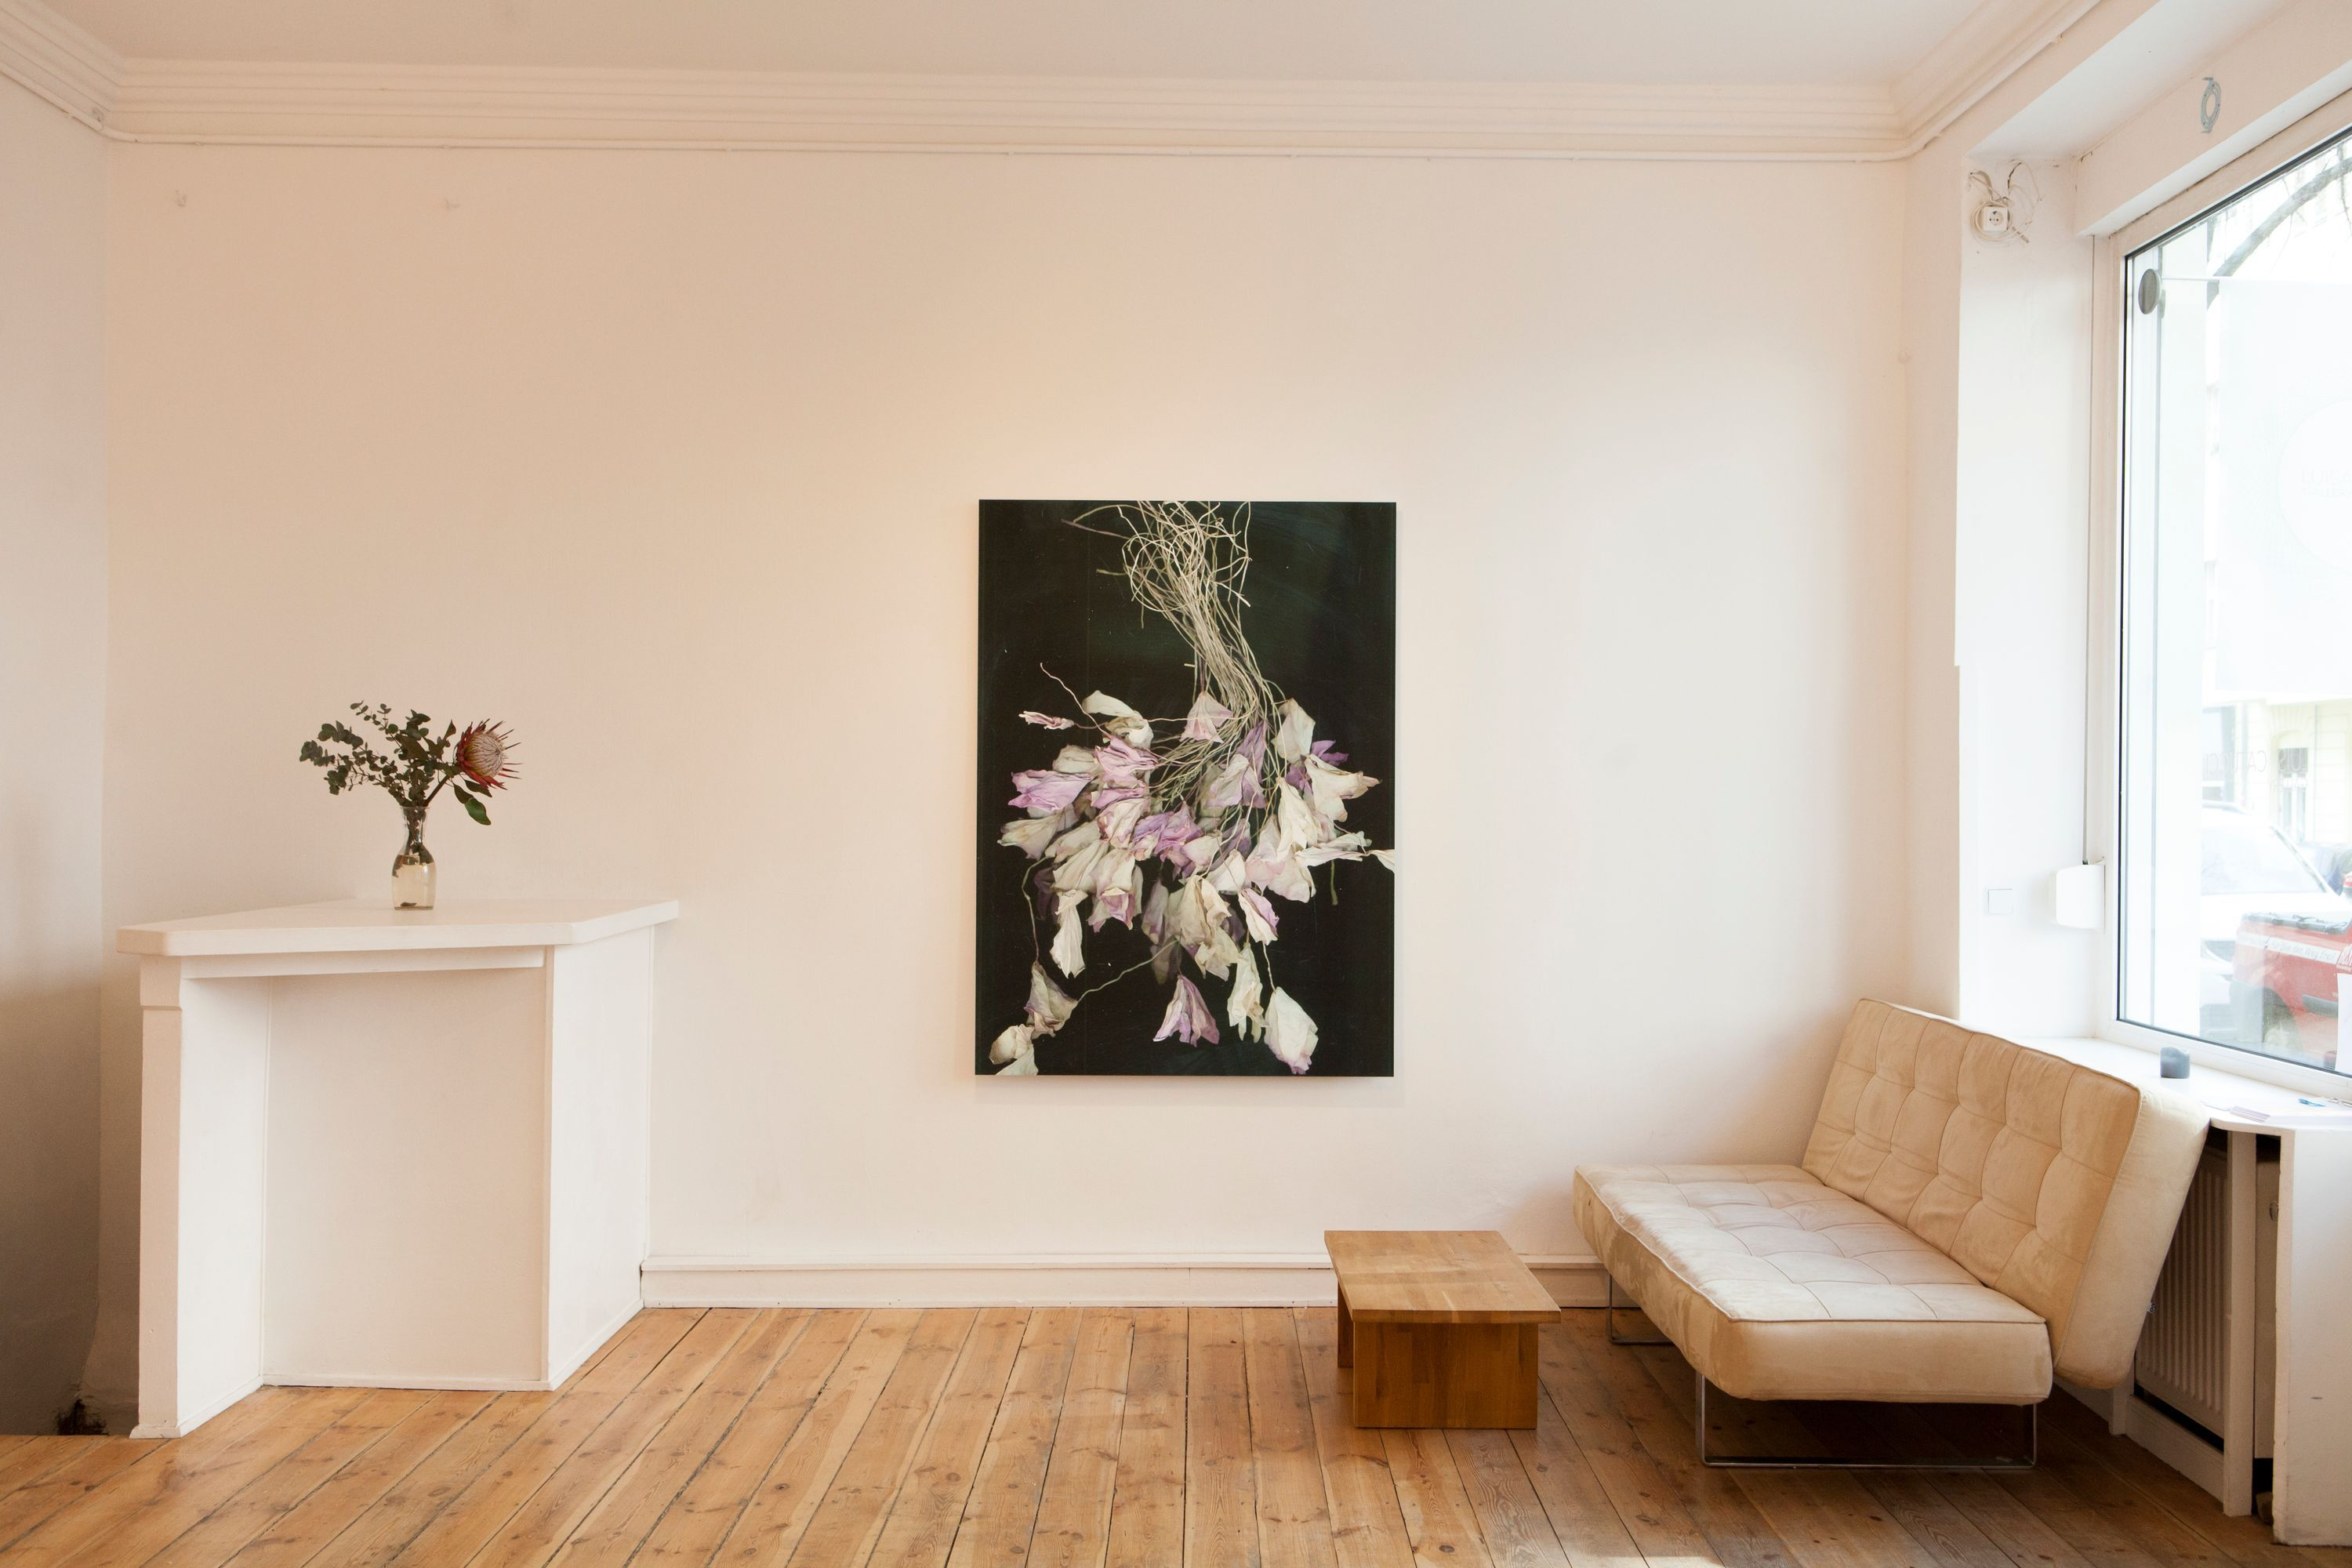 Aurore by Mathilde Nardone, Luisa Catucci Gallery (3 of 3)